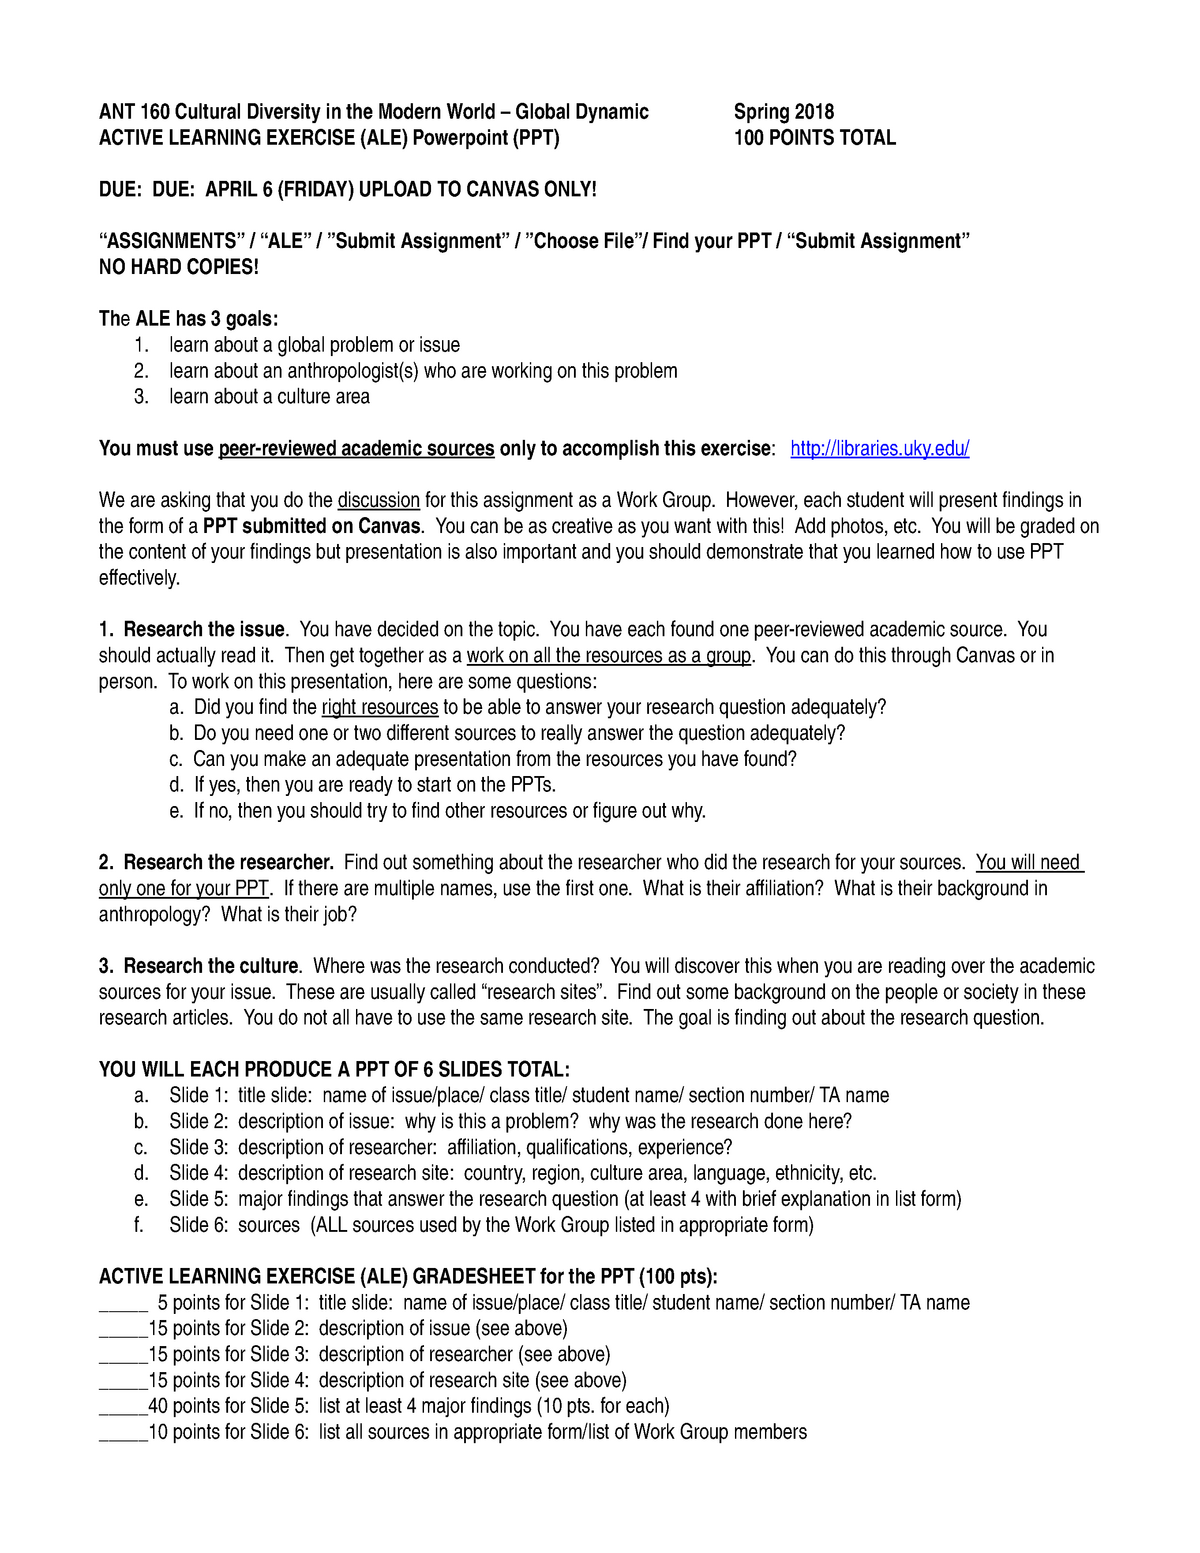 Active Learning Exercise notes - ANT160: Cultural Diversity In The